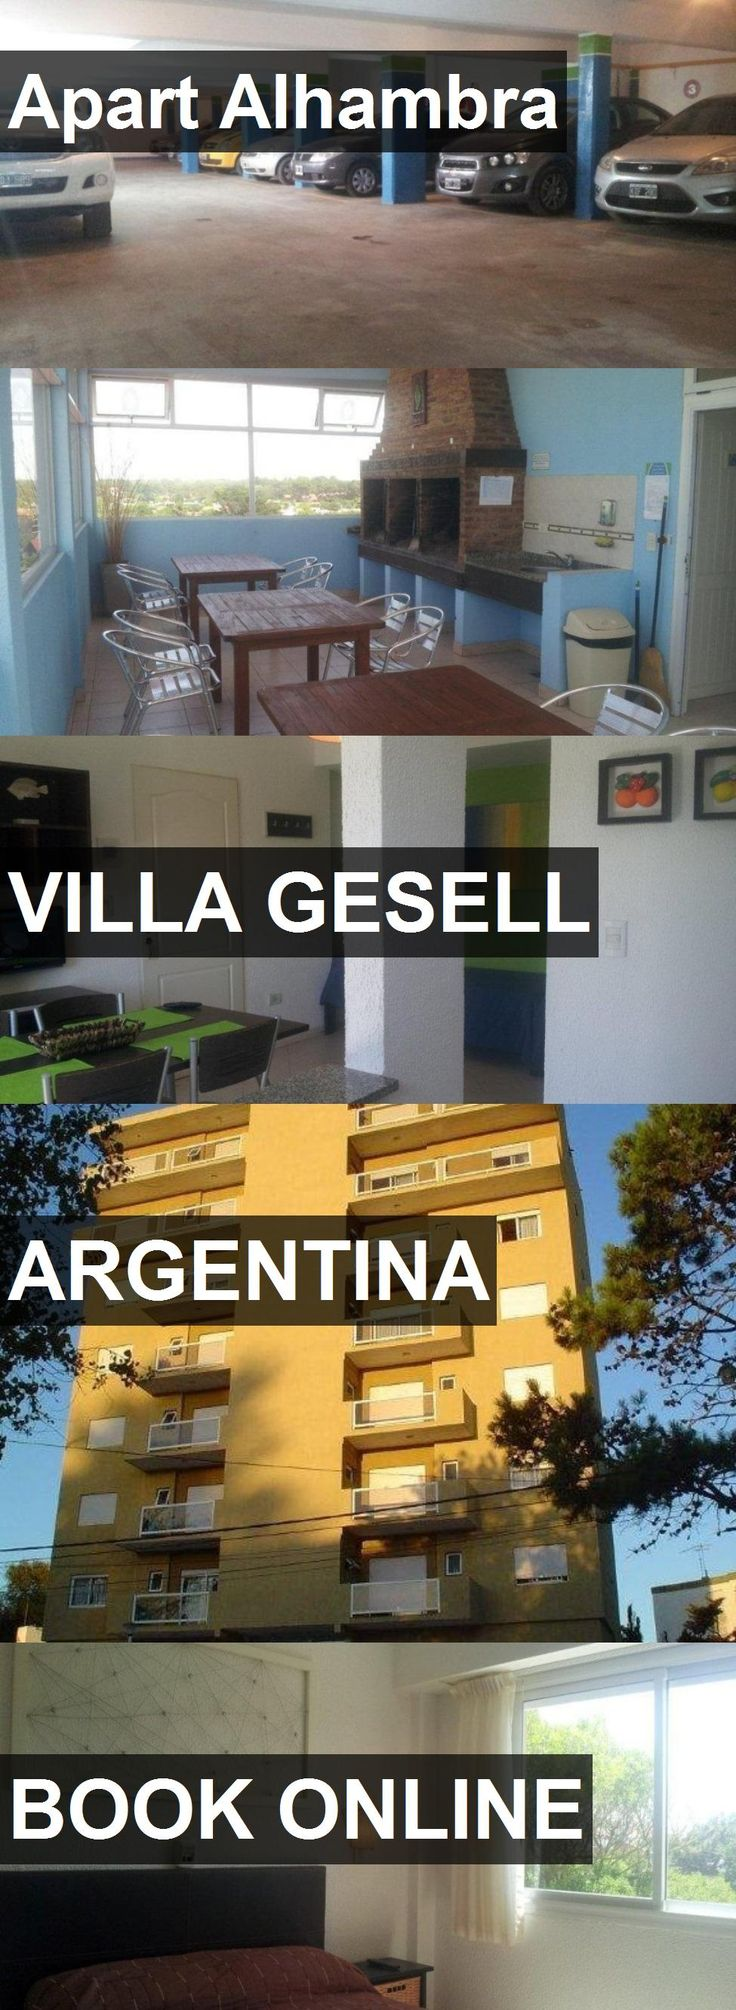 Hotel Apart Alhambra in Villa Gesell, Argentina. For more information, photos, reviews and best prices please follow the link. #Argentina #VillaGesell #travel #vacation #hotel